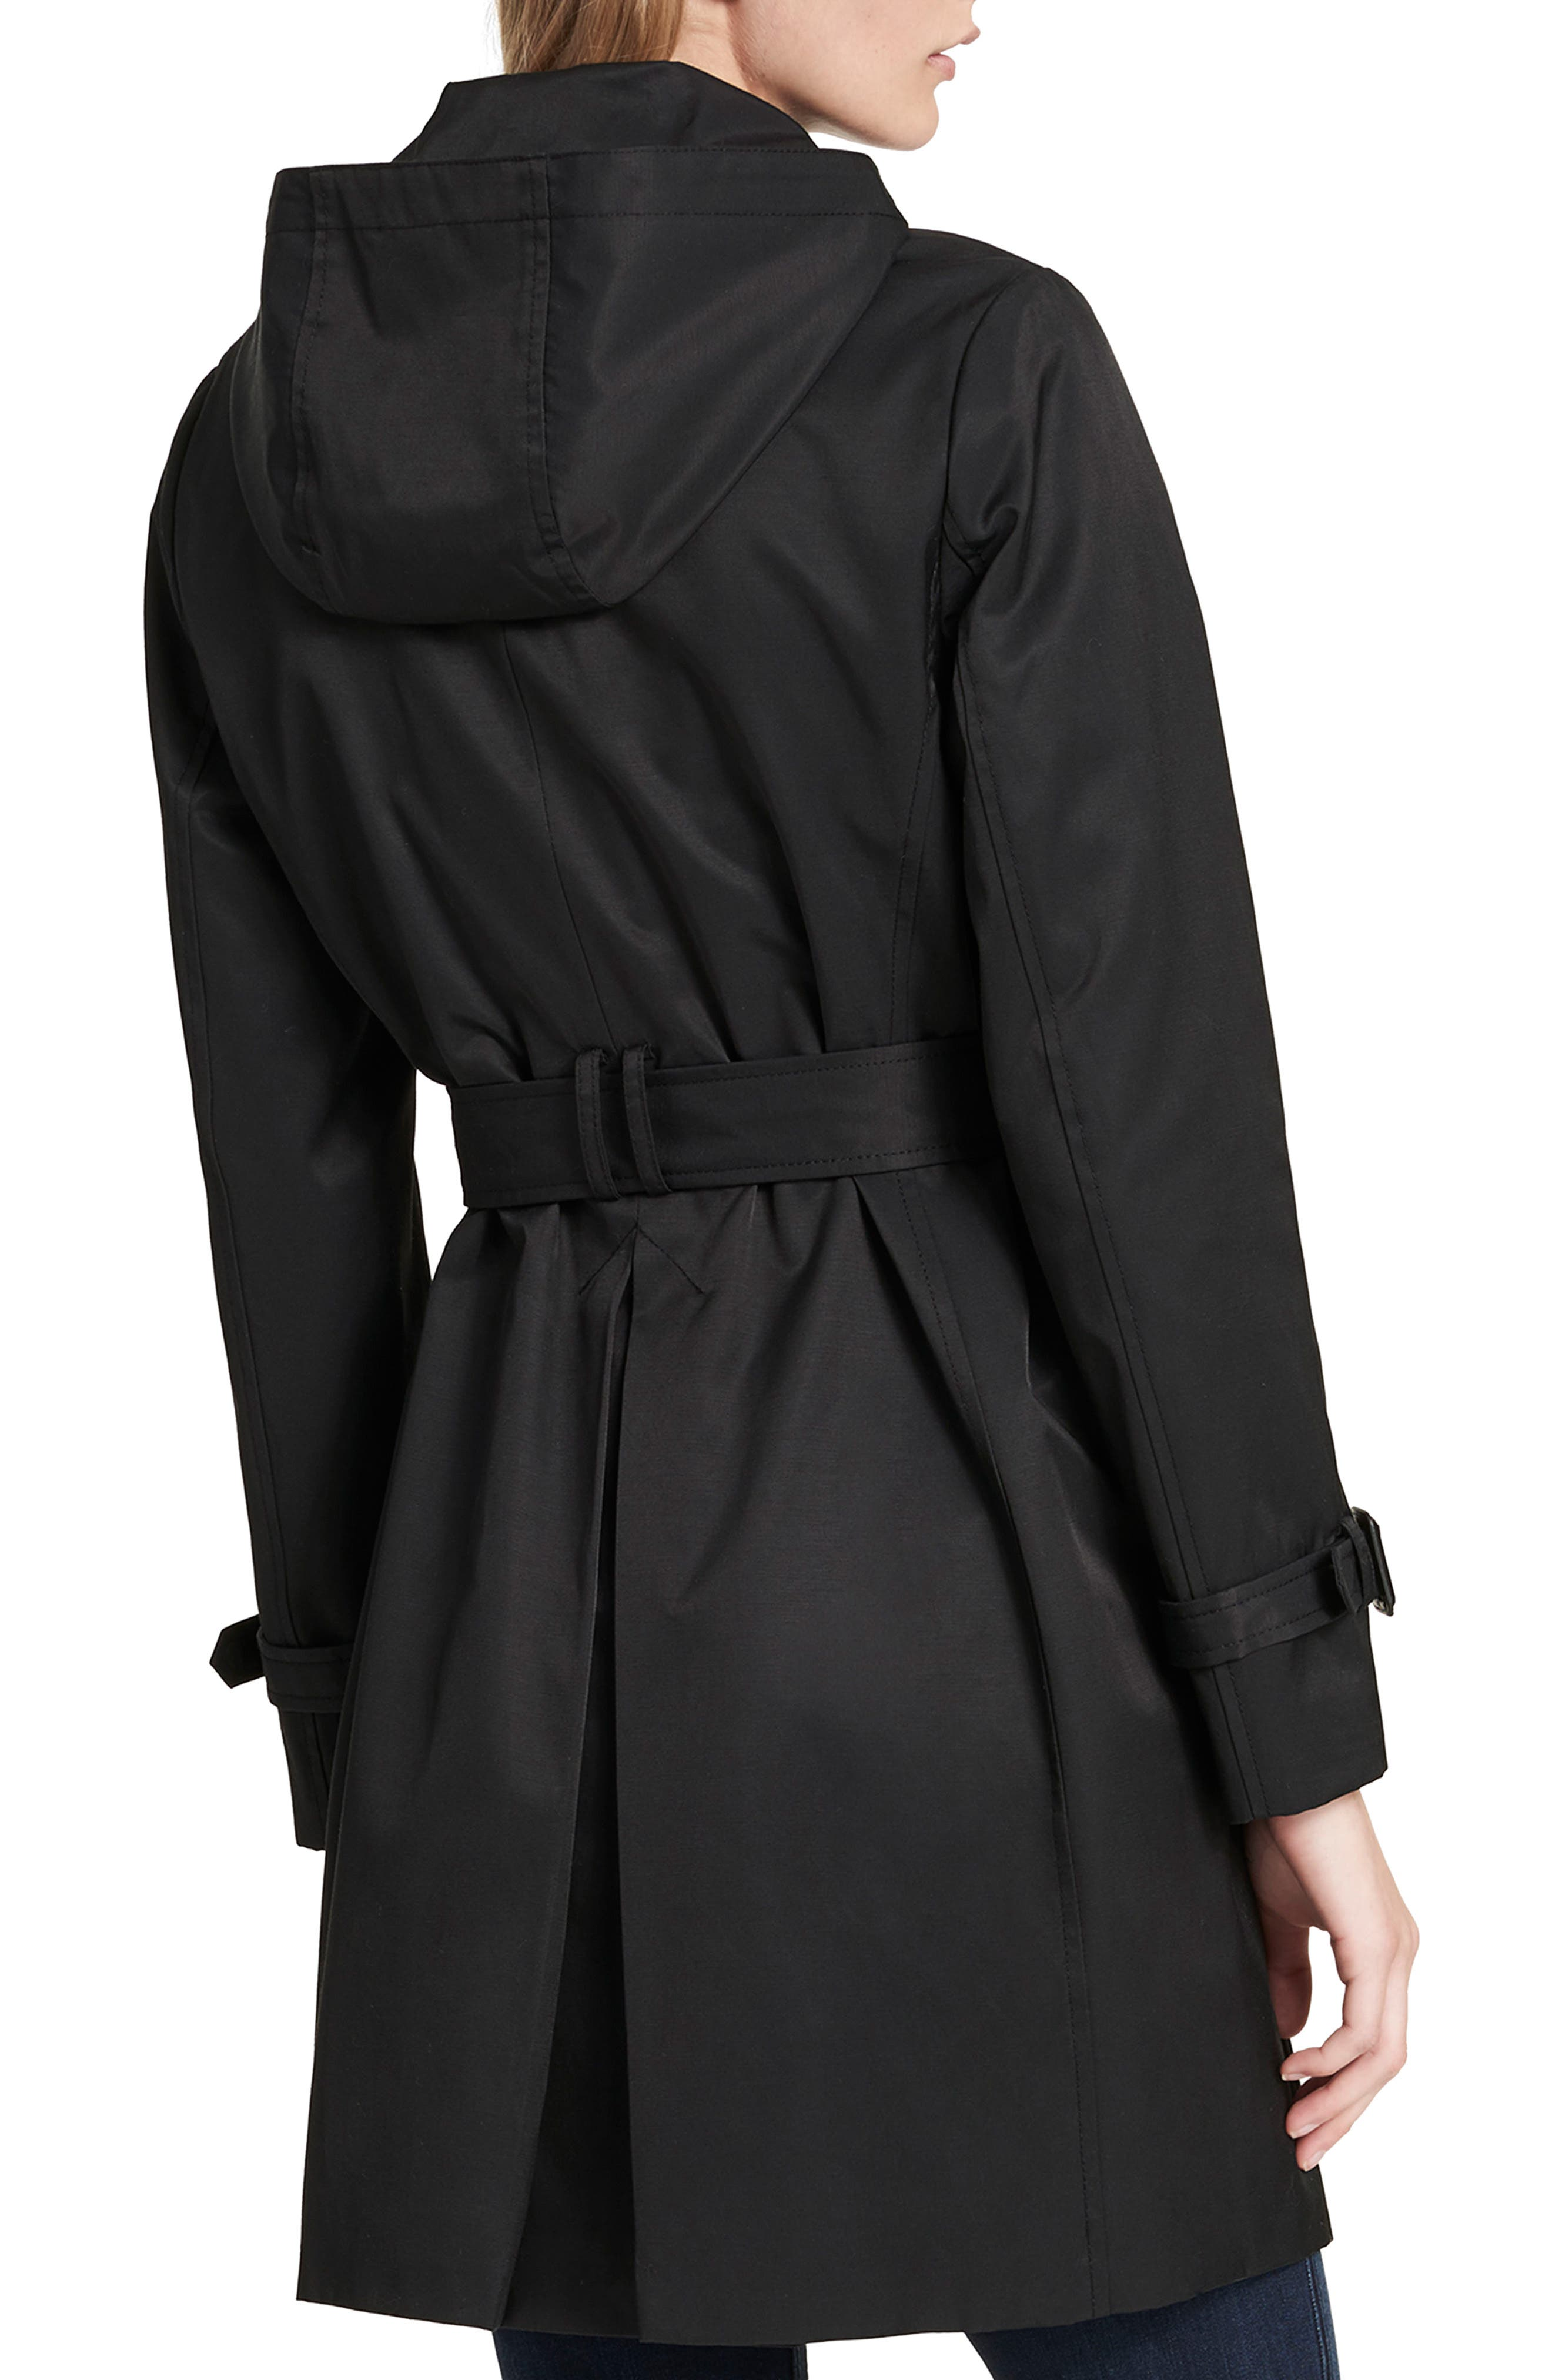 Water Resistant Belted Trench Coat,                             Alternate thumbnail 2, color,                             001